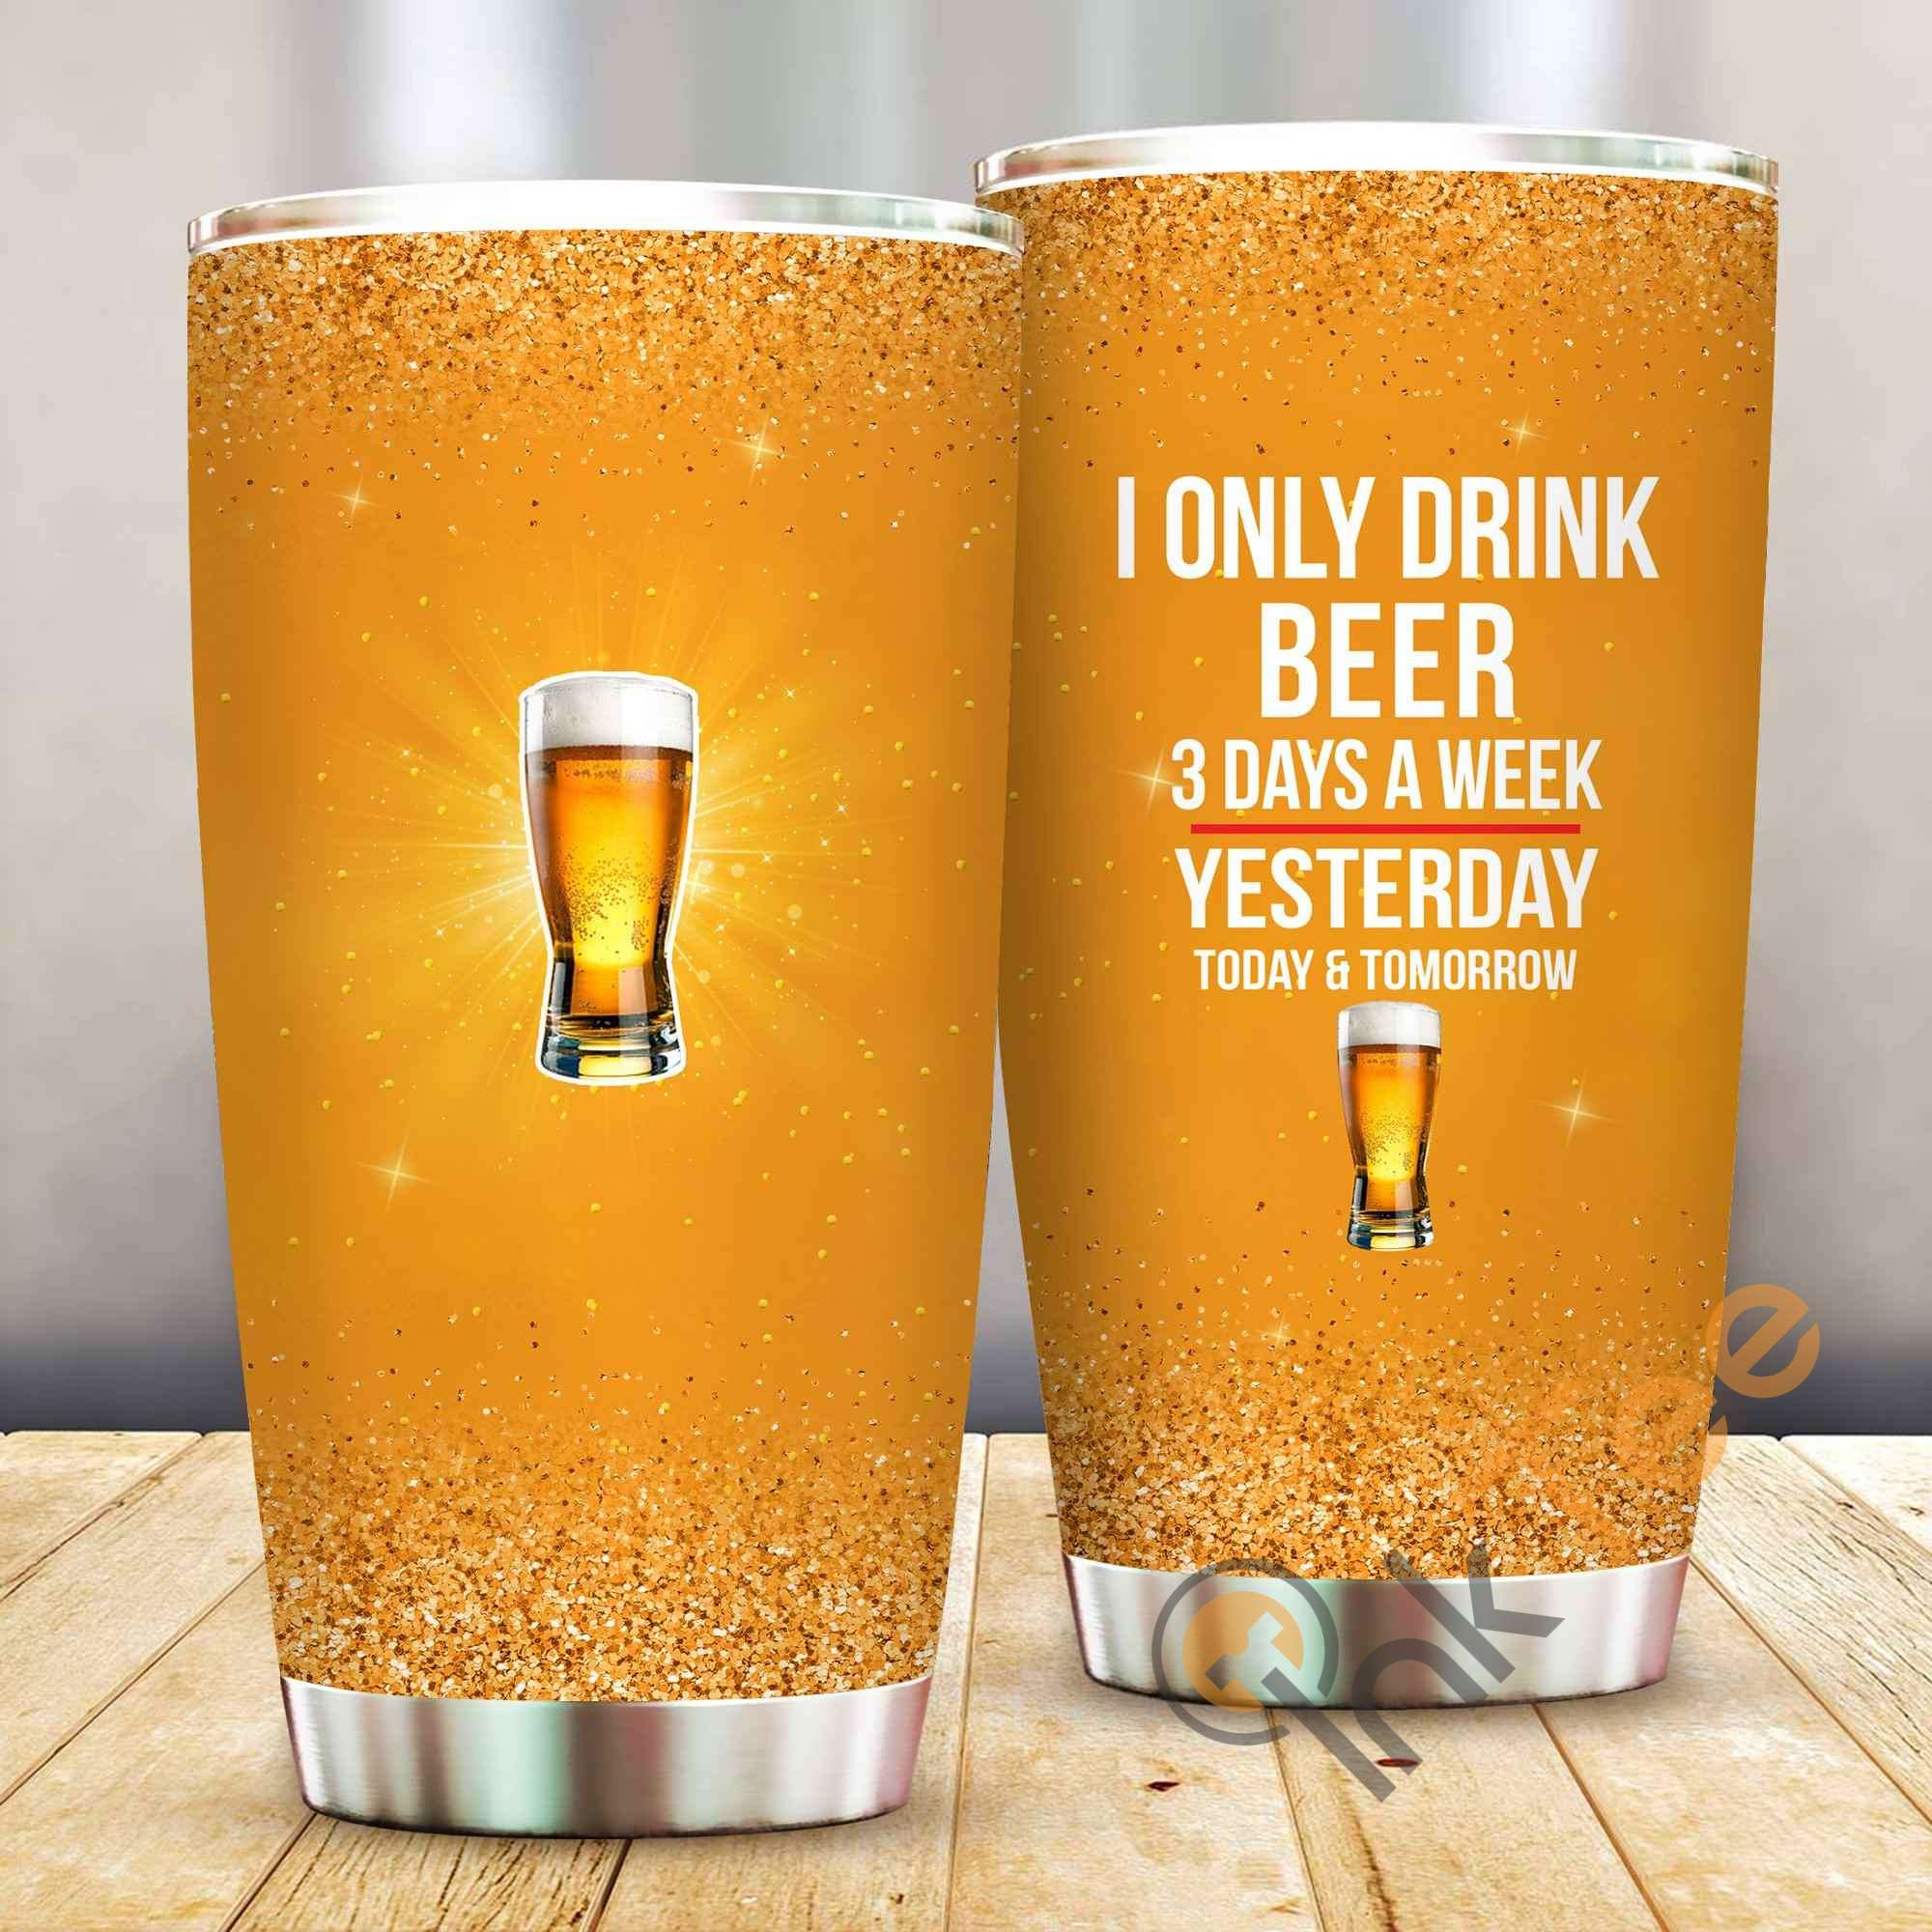 I Only Drink Beer 3 Days A Week Amazon Best Seller Sku 3930 Stainless Steel Tumbler